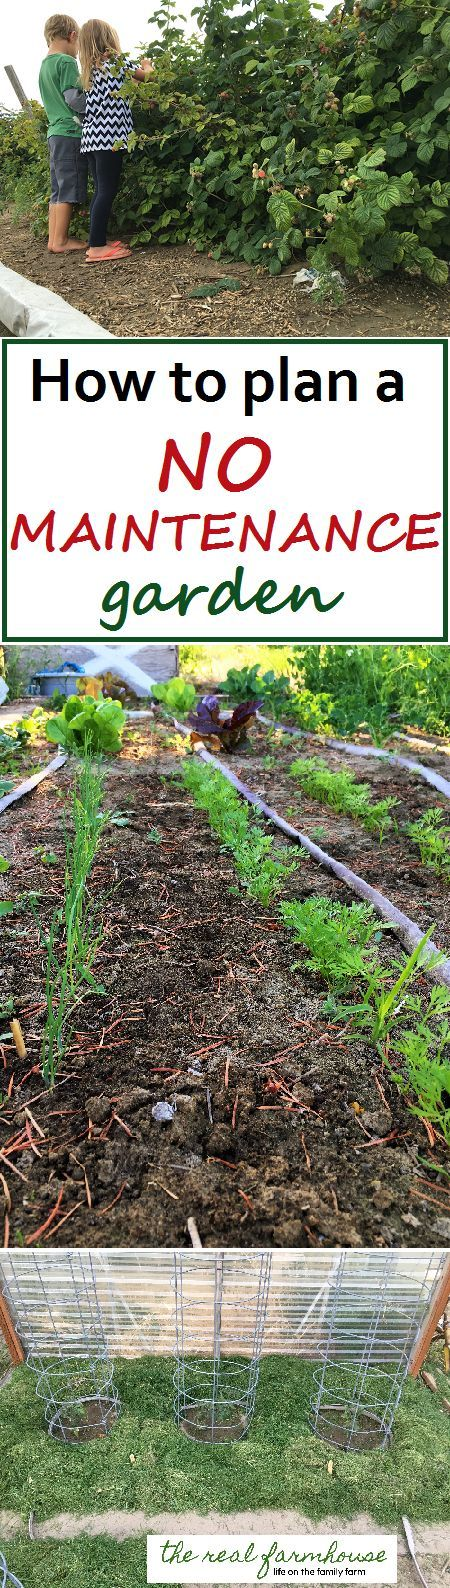 Great advice for planning a no maintenance garden! 5 secrets and how to implement them in the garden.